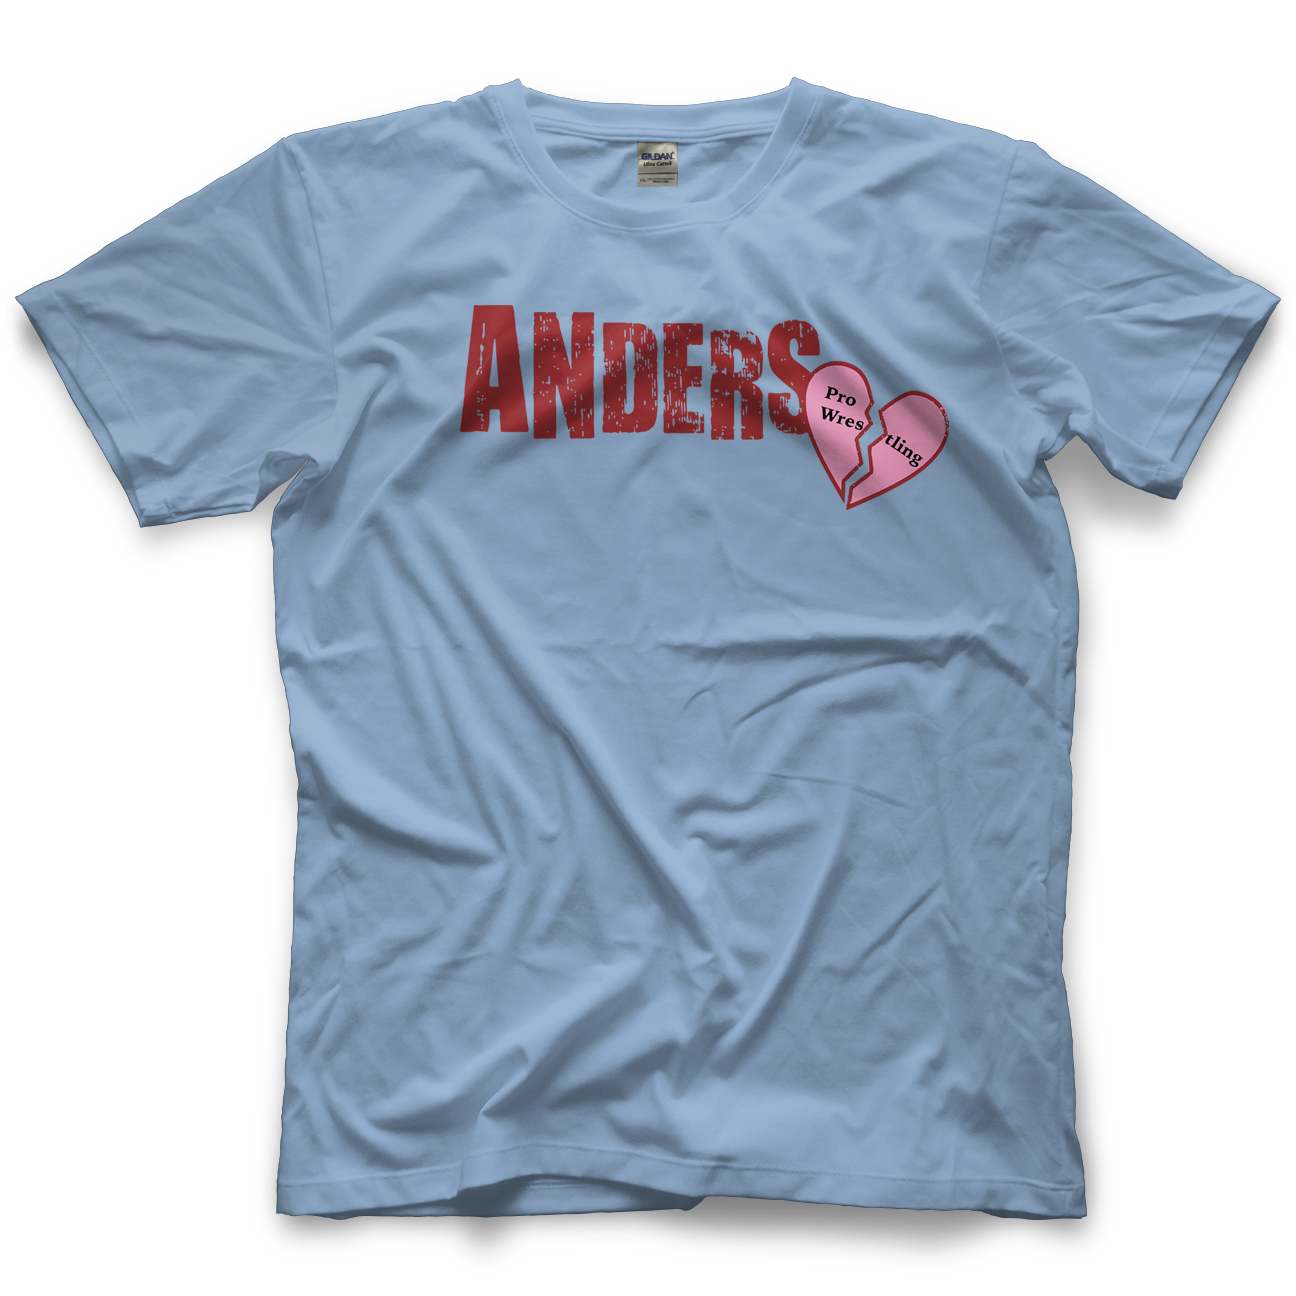 Aaron Anders Broke My Heart T-shirt